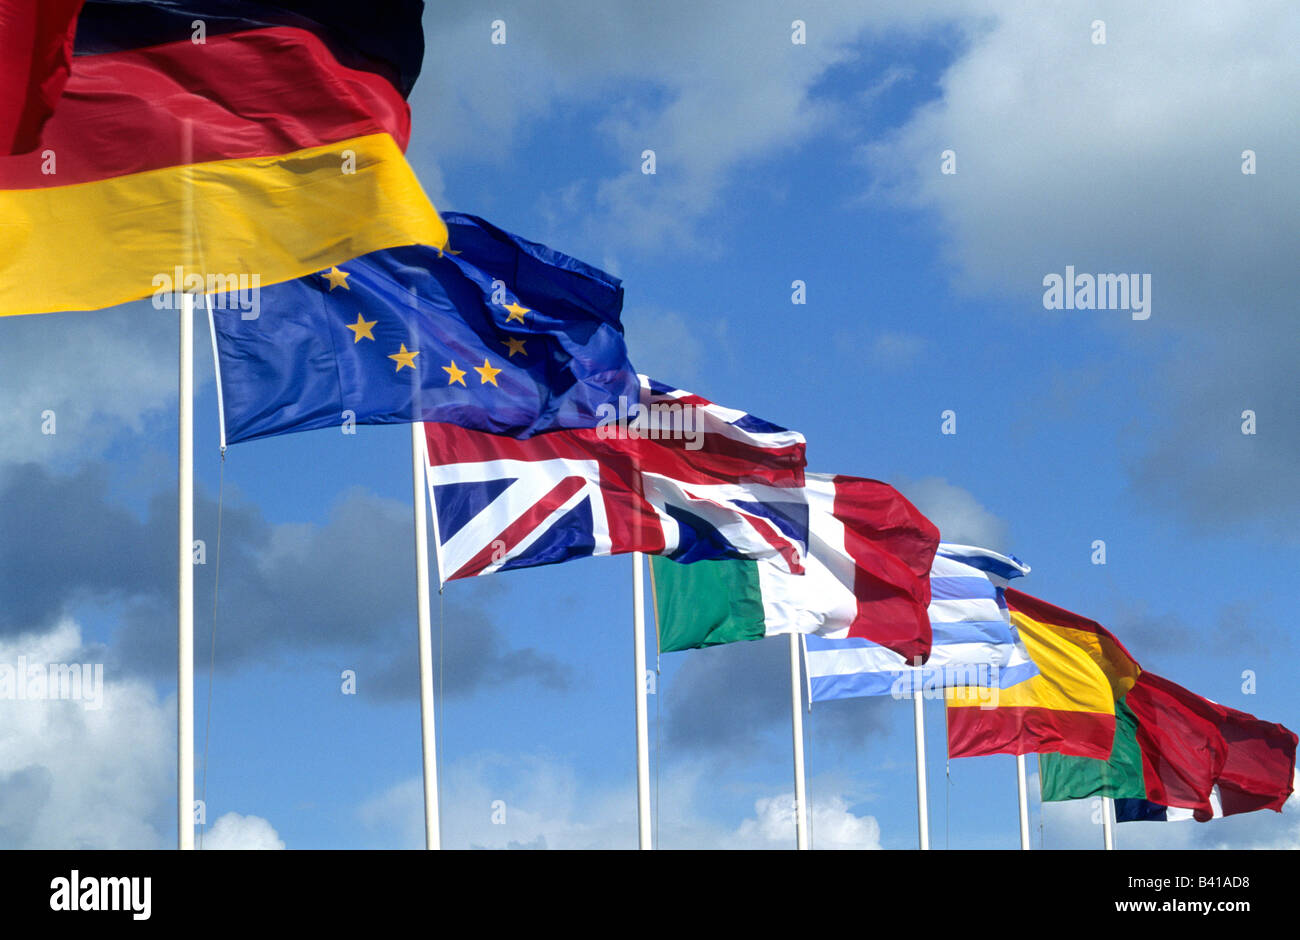 European country flags - Stock Image